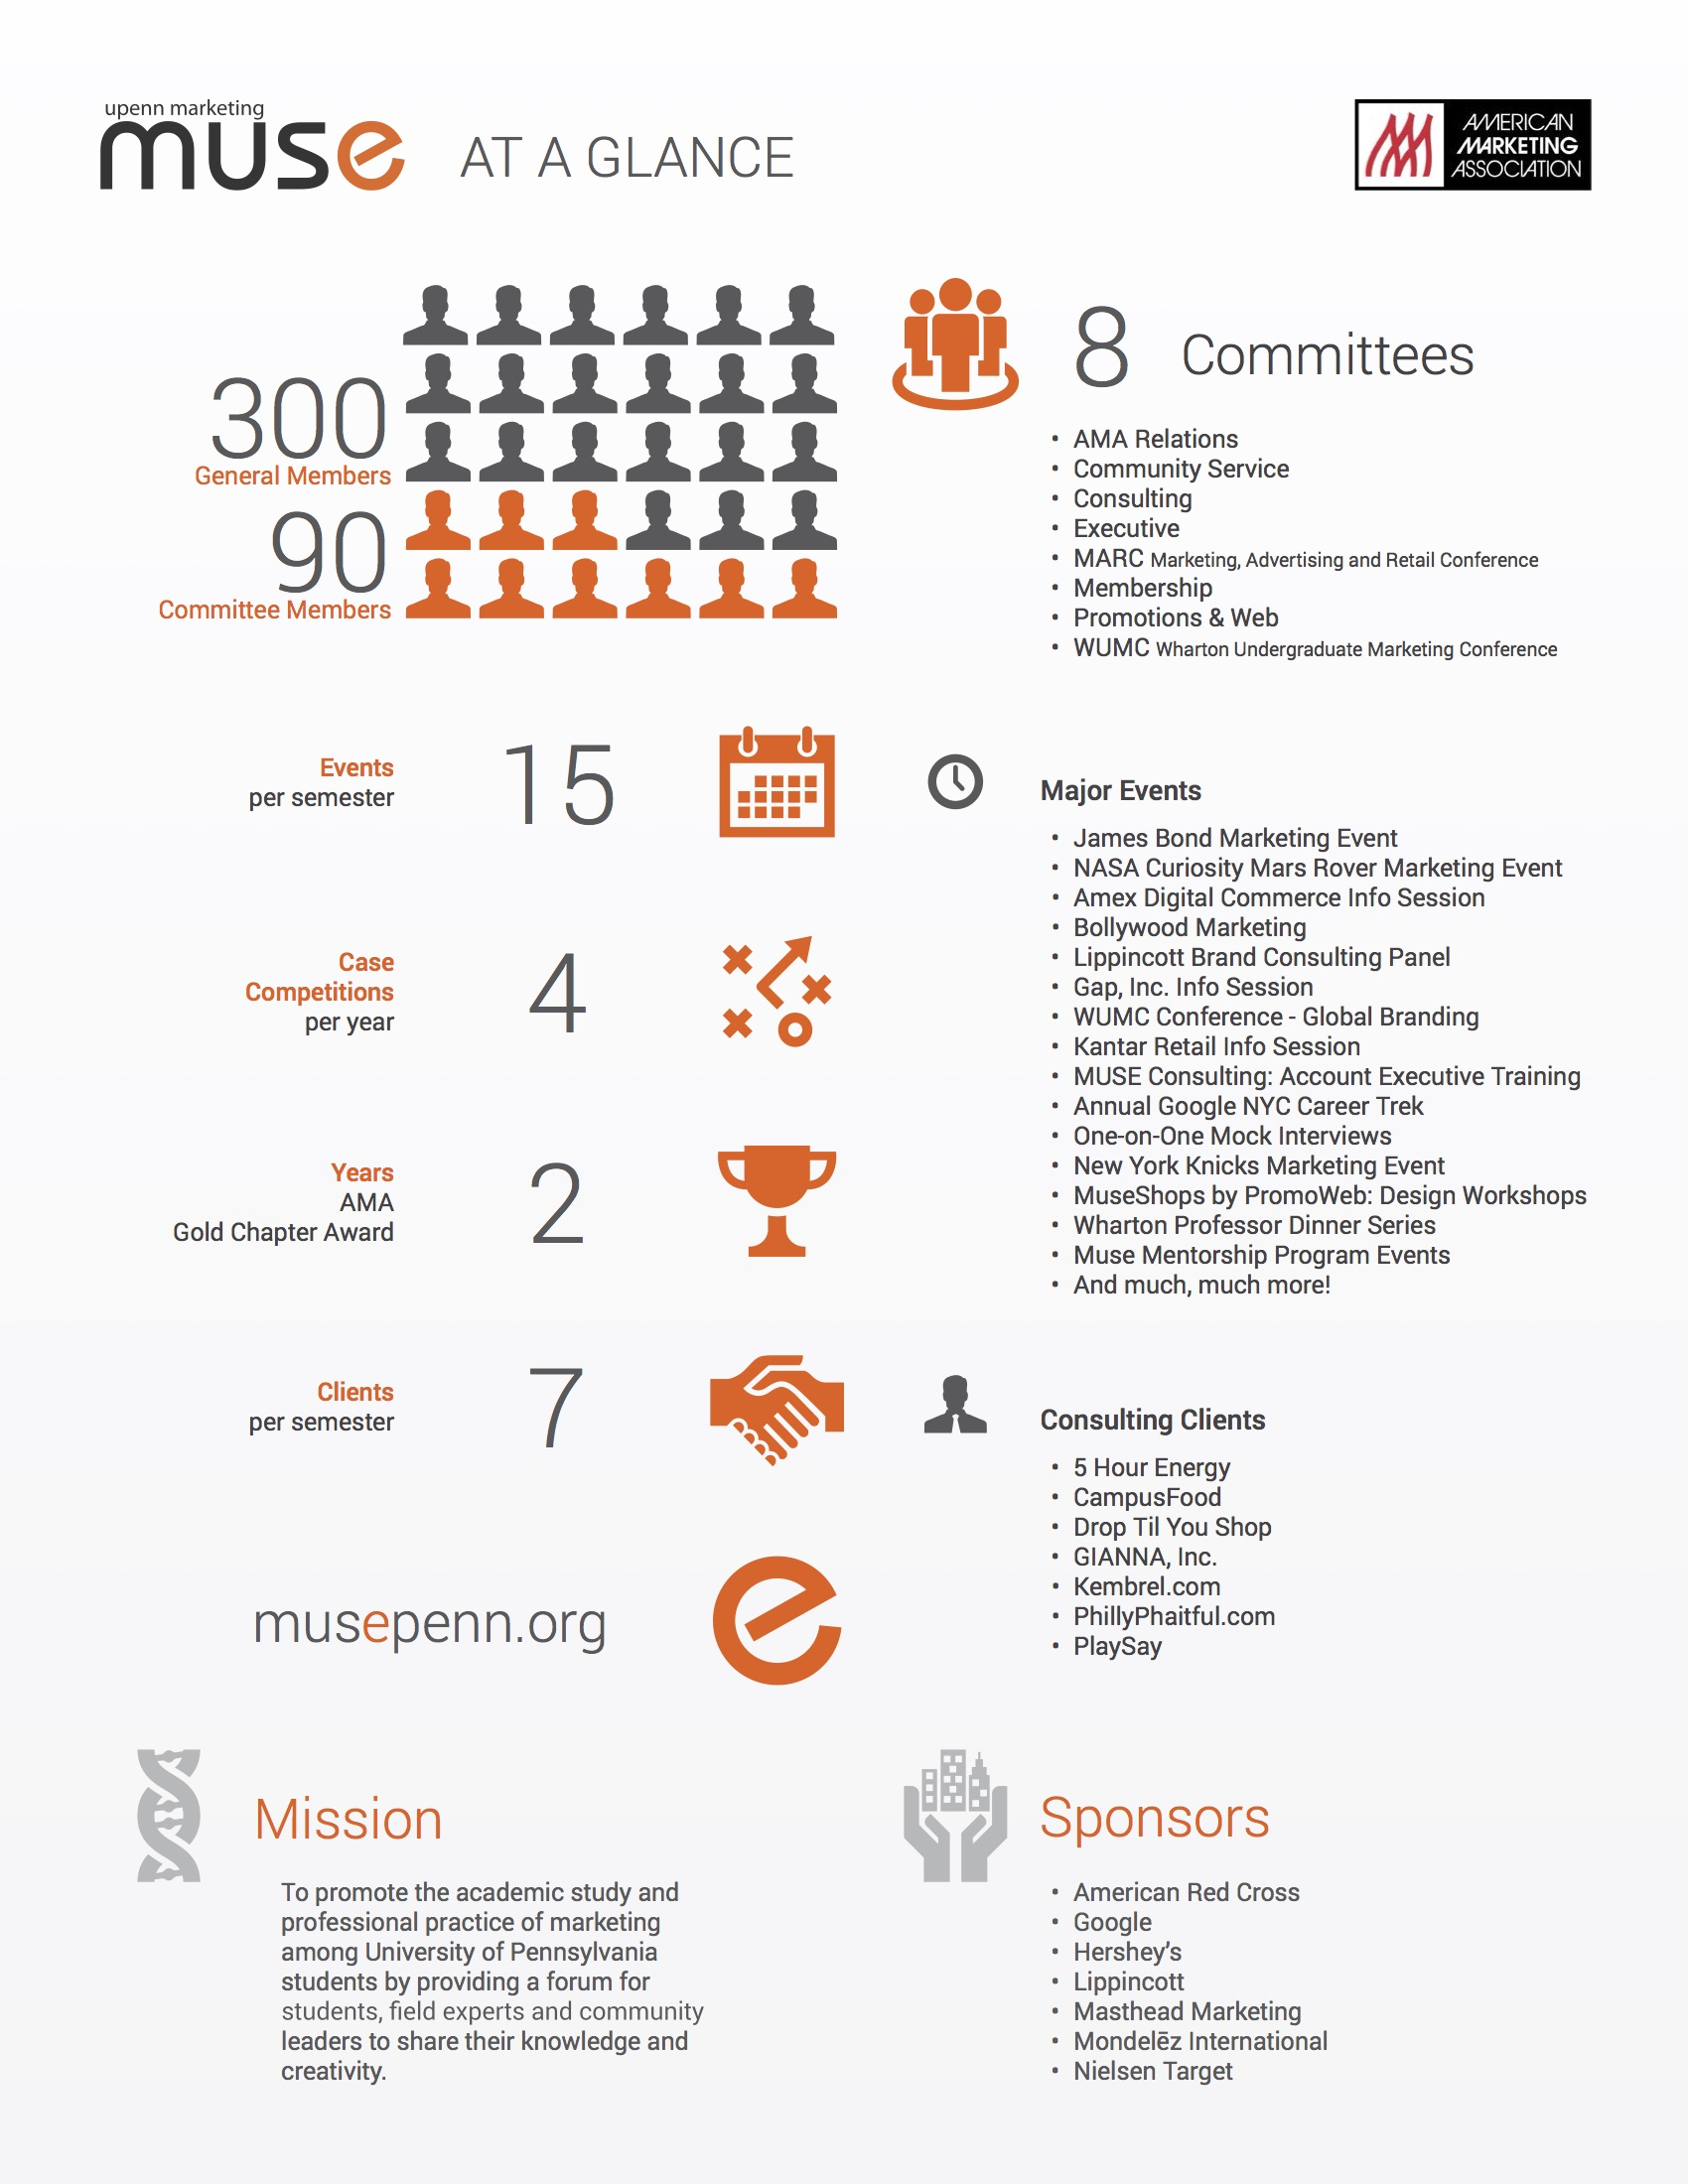 - Muse FactsheetThis is a 2014 factsheet for MUSE Penn, a student organization for marketing at the University of Pennsylvania. The Promotions and Web Committee wished to create a quick, visual summary of the organization.